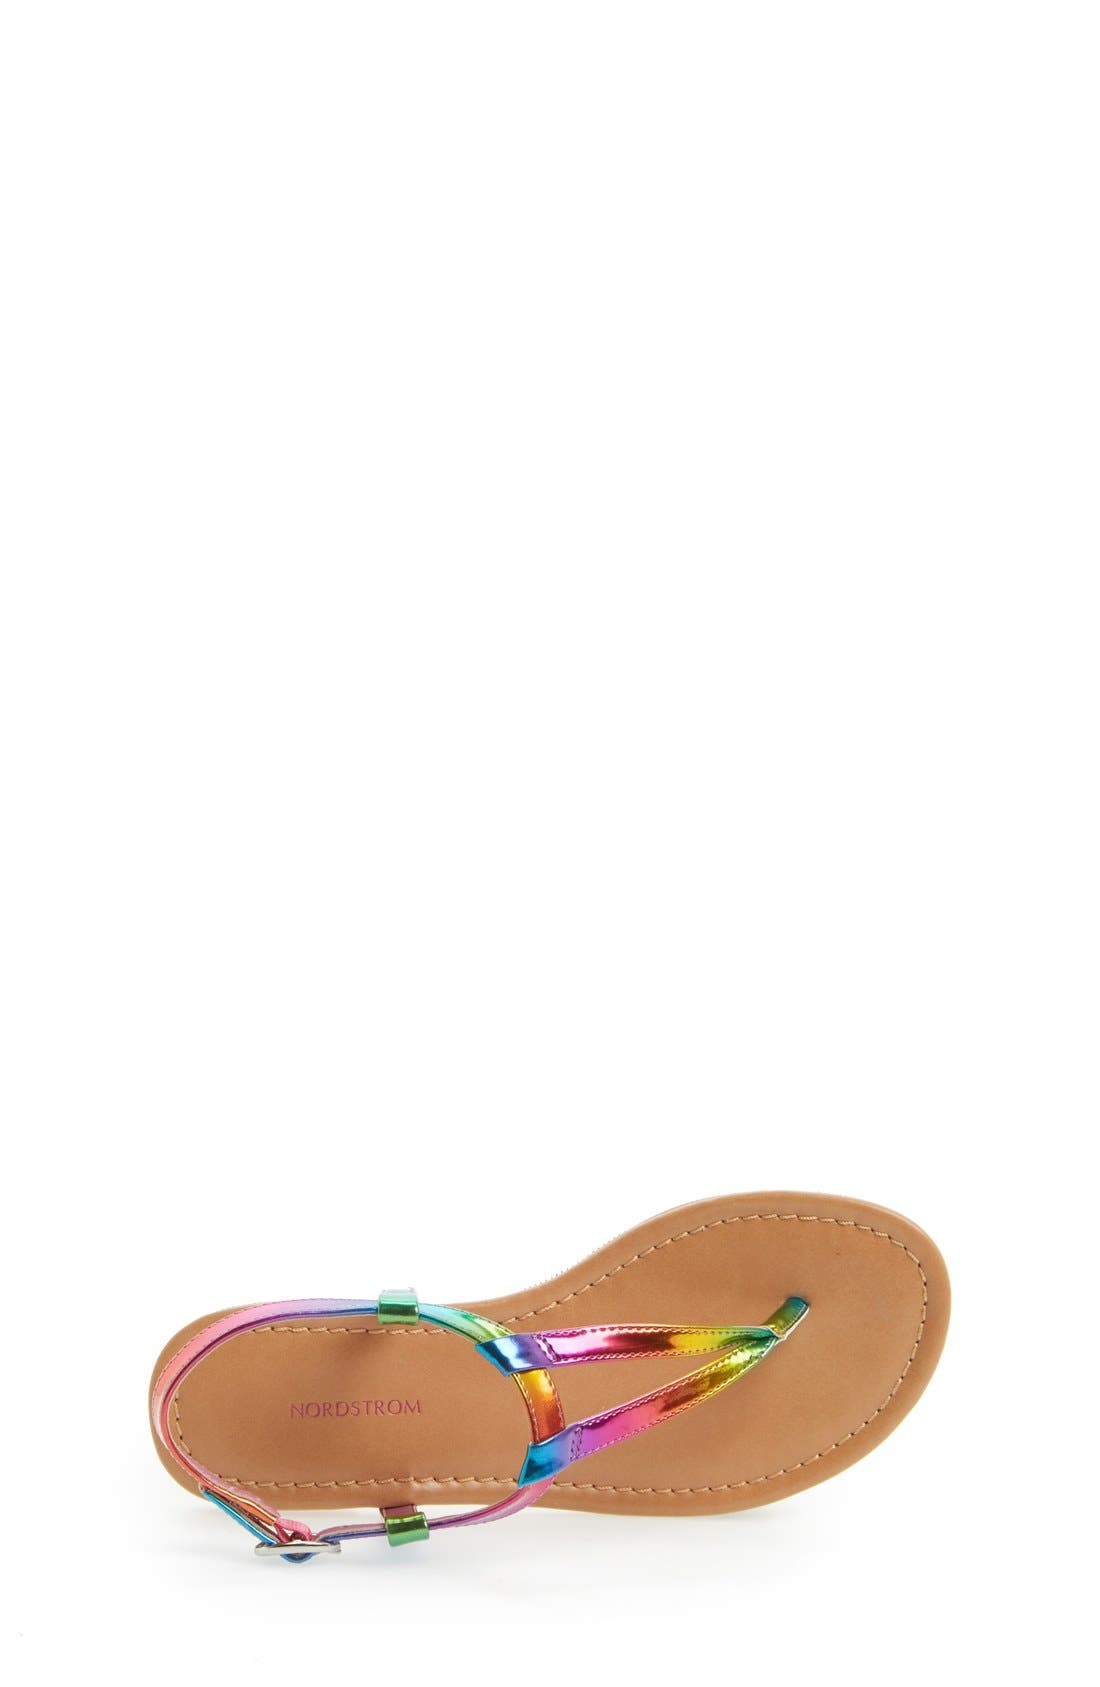 Alternate Image 3  - Nordstrom 'Audra' Sandal (Toddler, Little Kid & Big Kid)